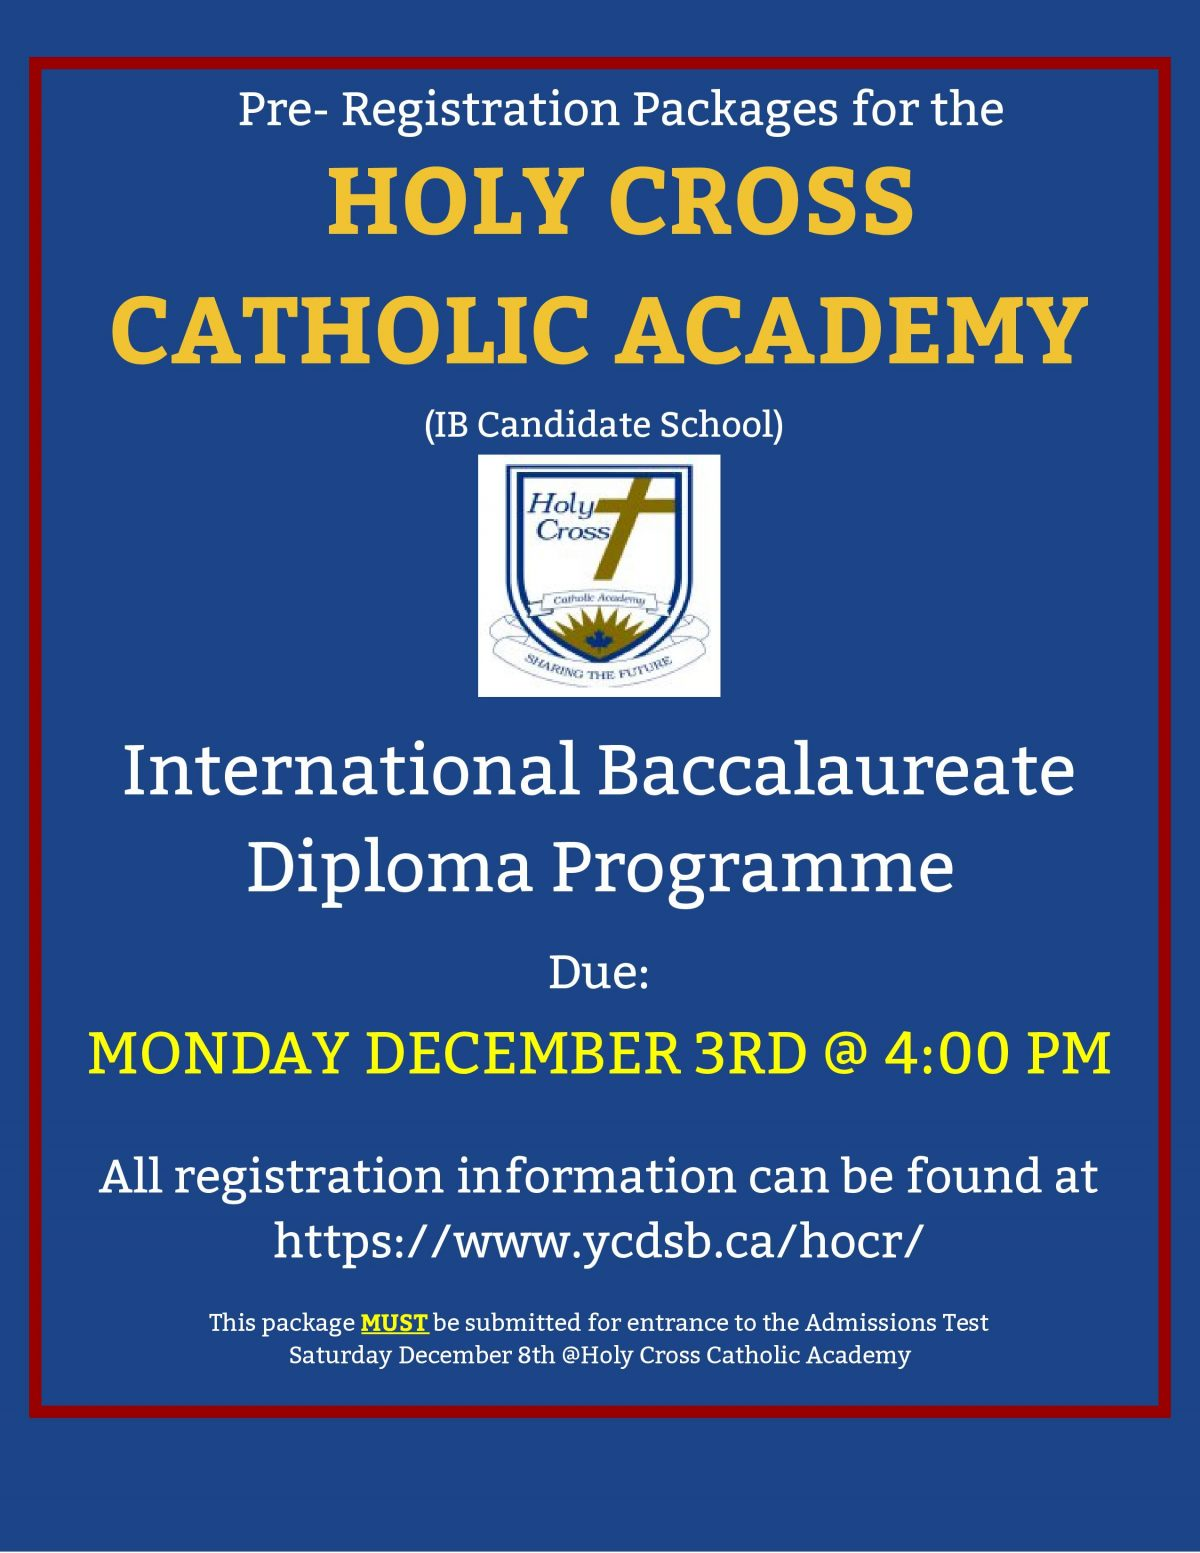 Holy Cross Catholic Academy Pre-Registration Packages